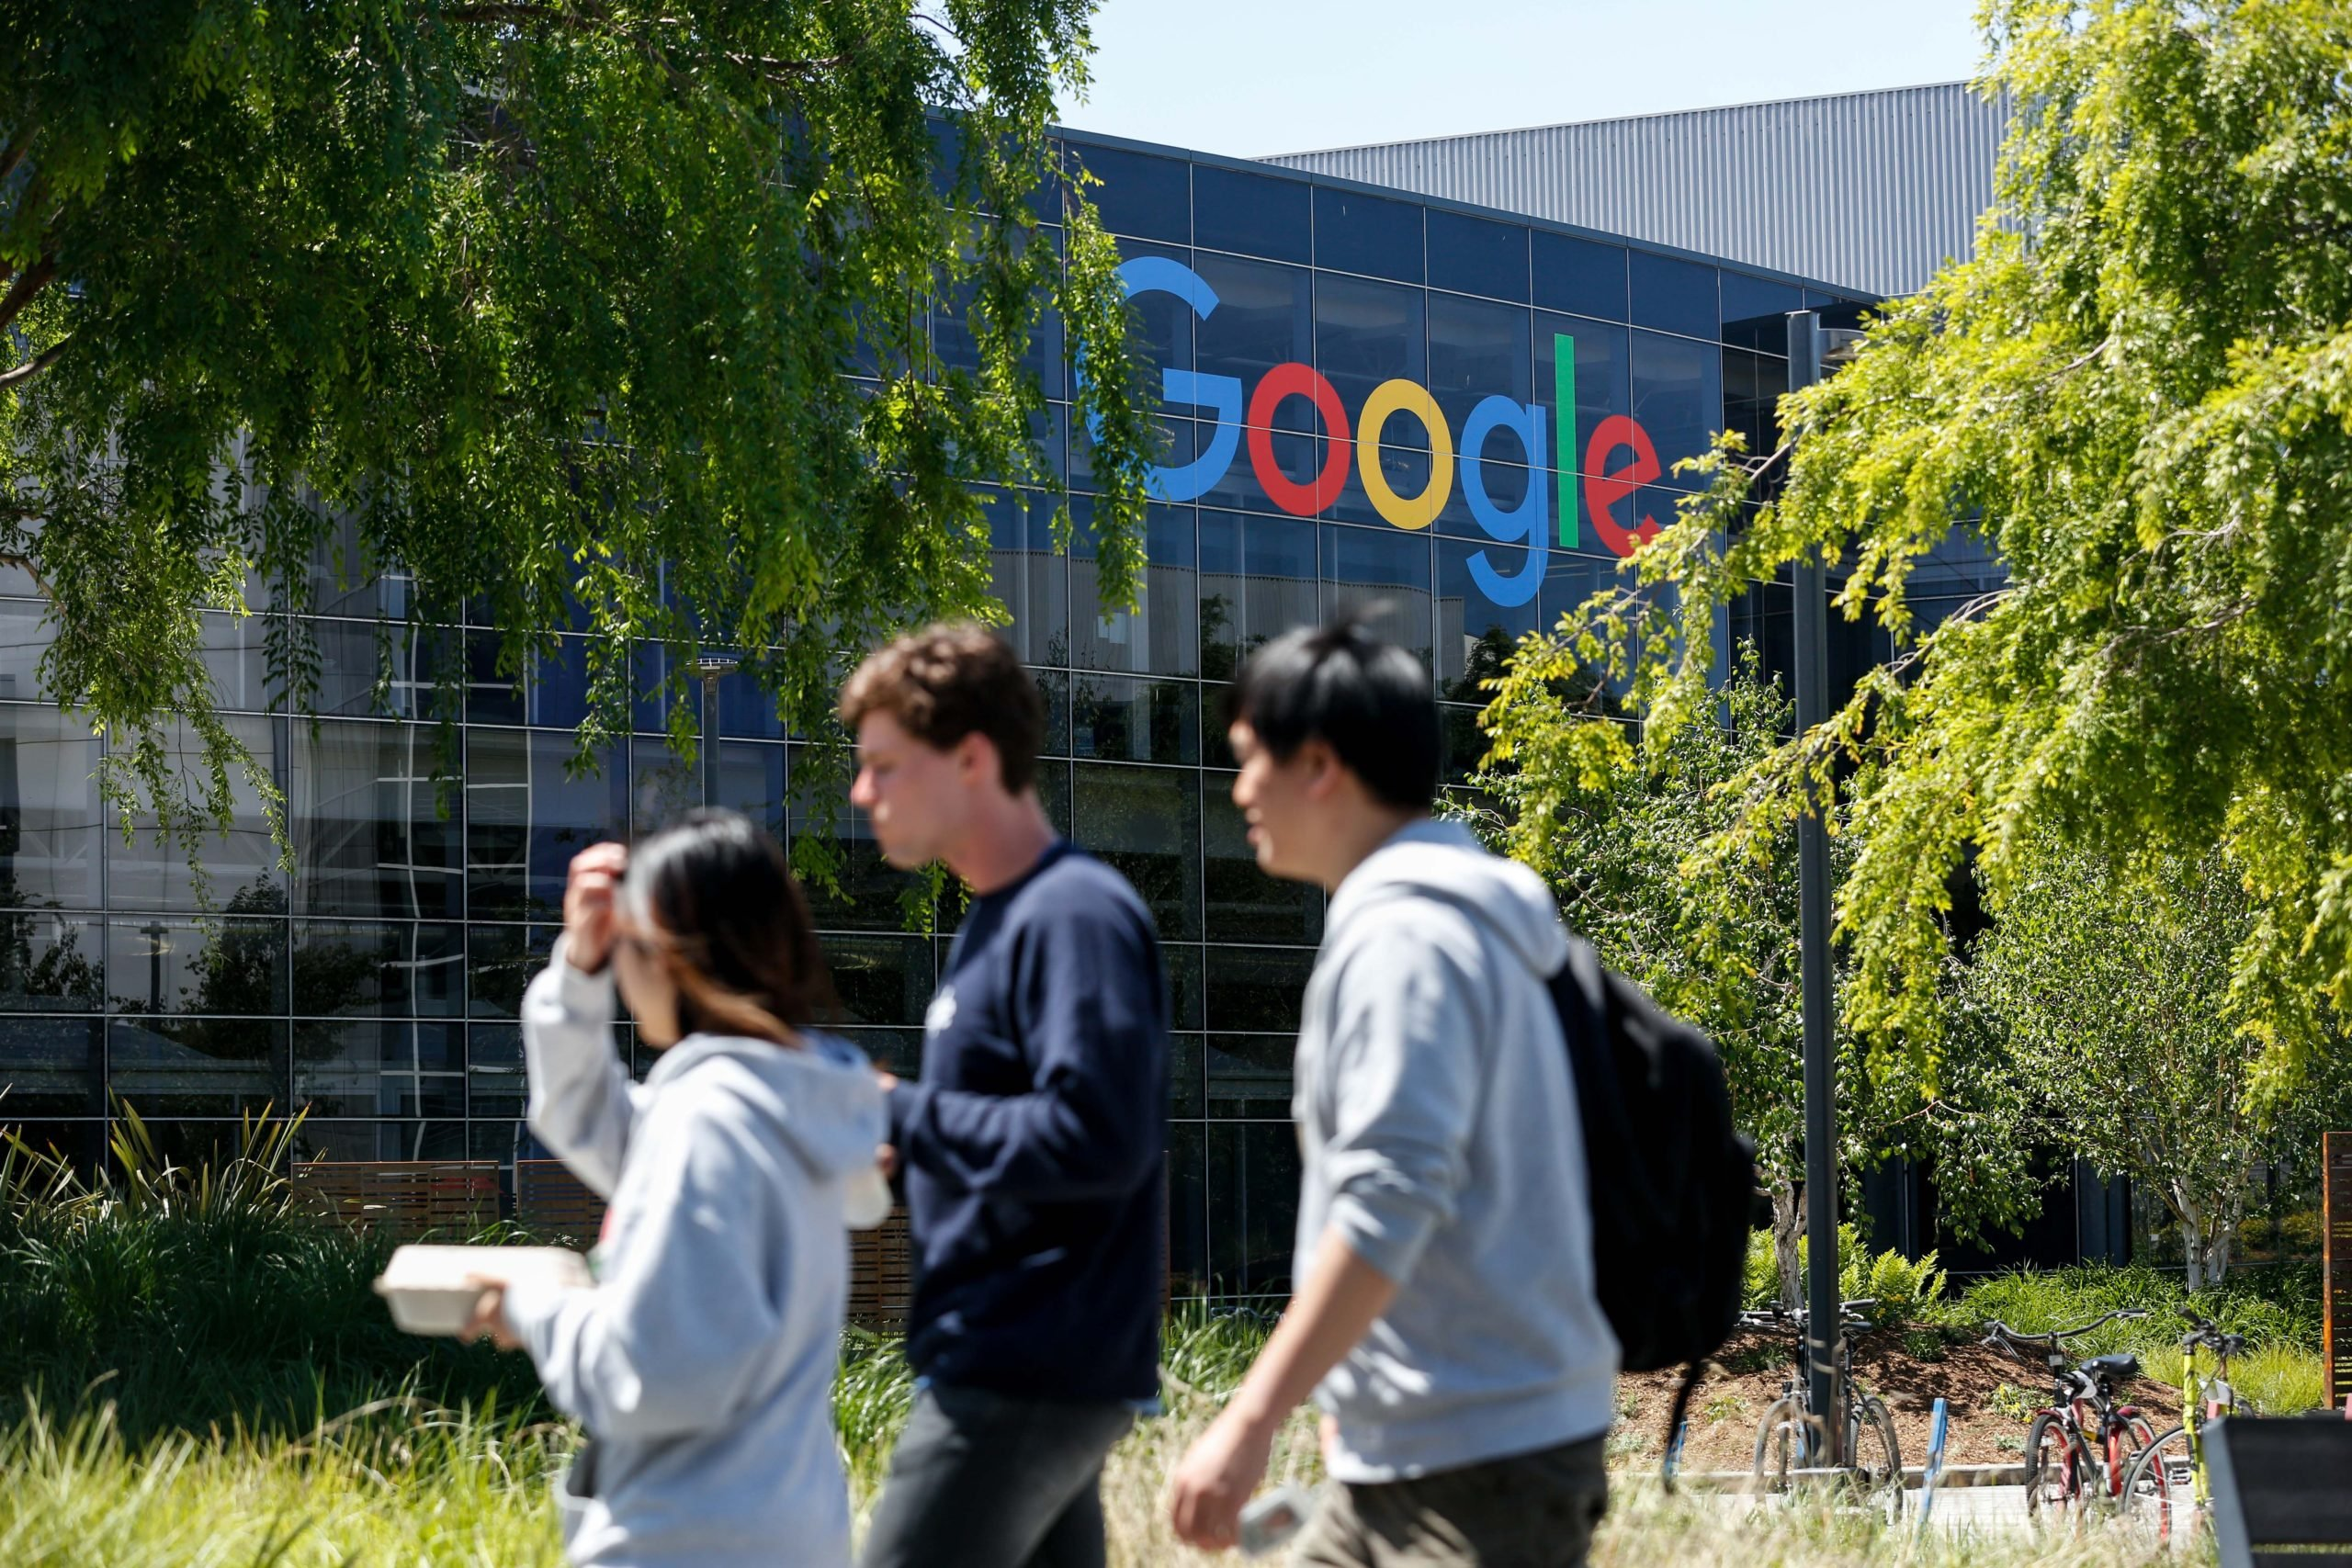 People walk in Google's main campus as a sit-in to protest against Google's retaliation against workers takes place within Google's main cafeteria in Mountain View, California on May 1, 2019. (Photo by Amy Osborne / AFP via Getty Images)